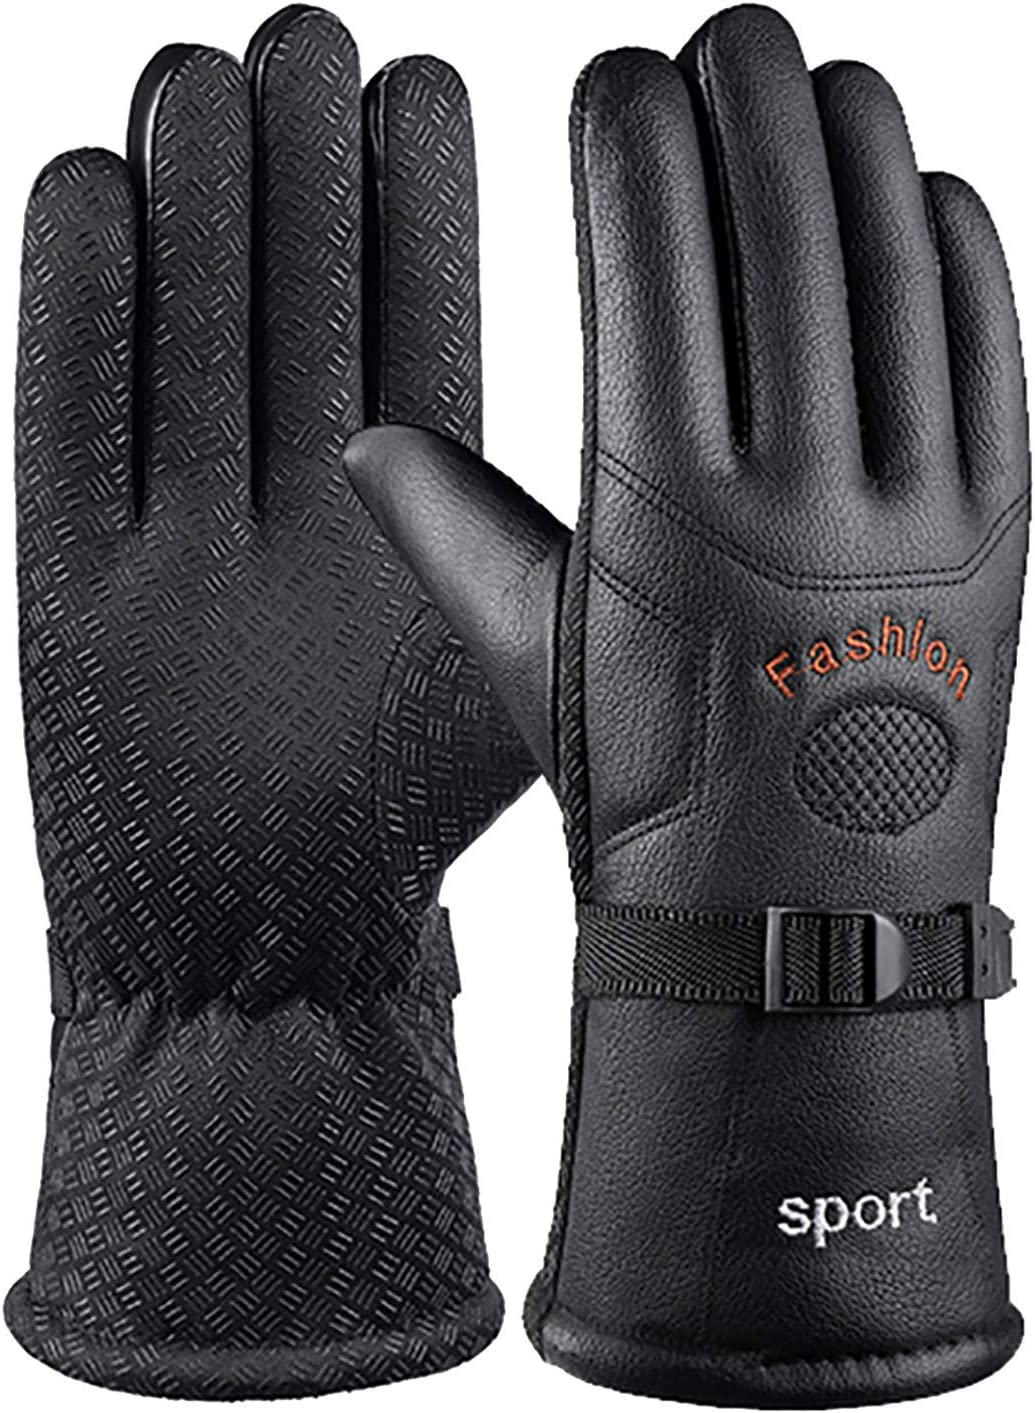 Warm Winter Ski Gloves, Waterproof and Windproof Outdoor Mountaineering and Cycling Gloves.